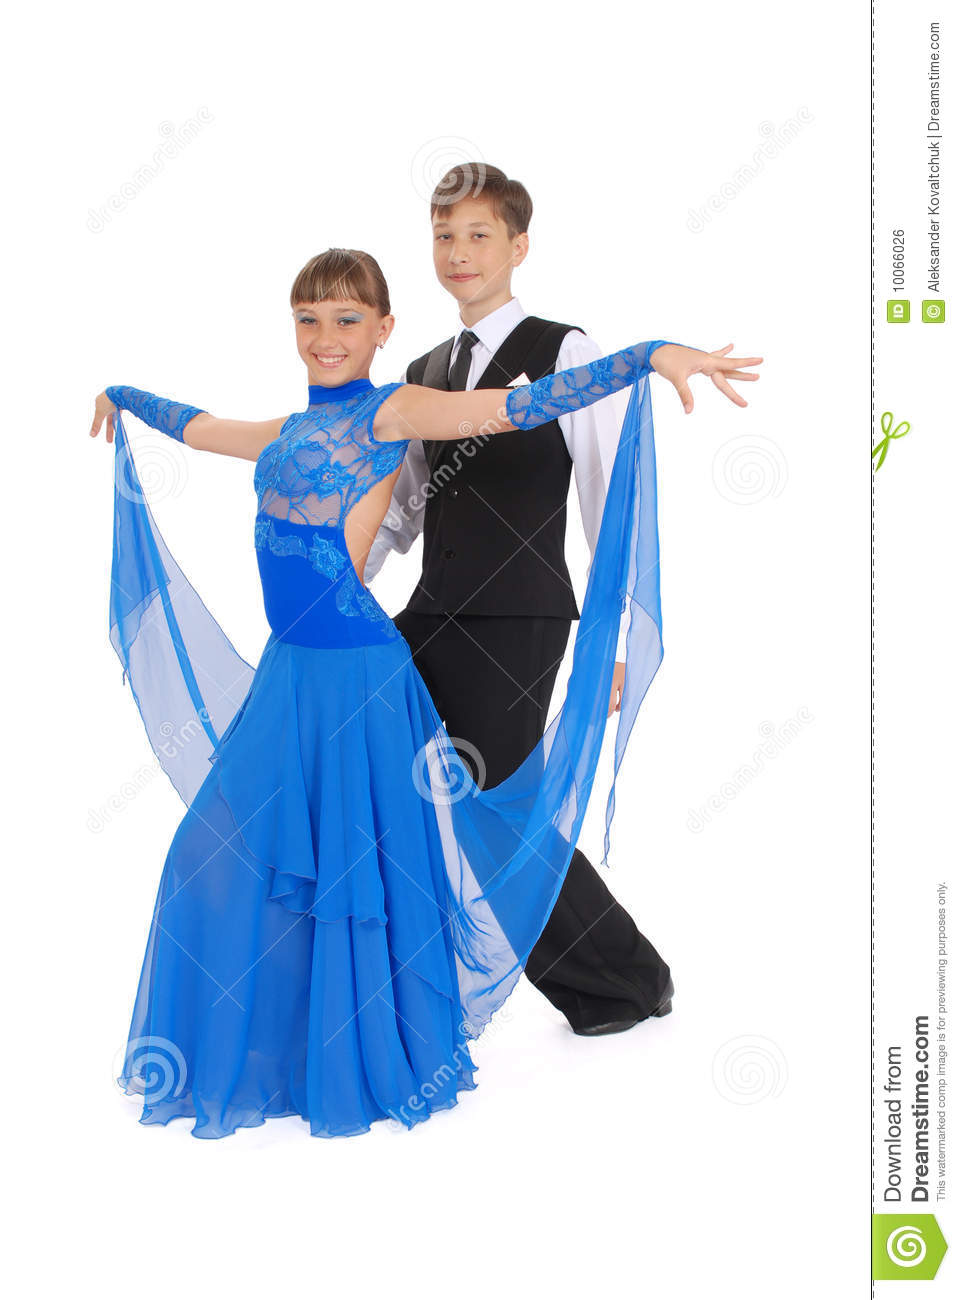 Boy And Girl Dancing Ballroom Dance Royalty Free Stock Image - Image ...